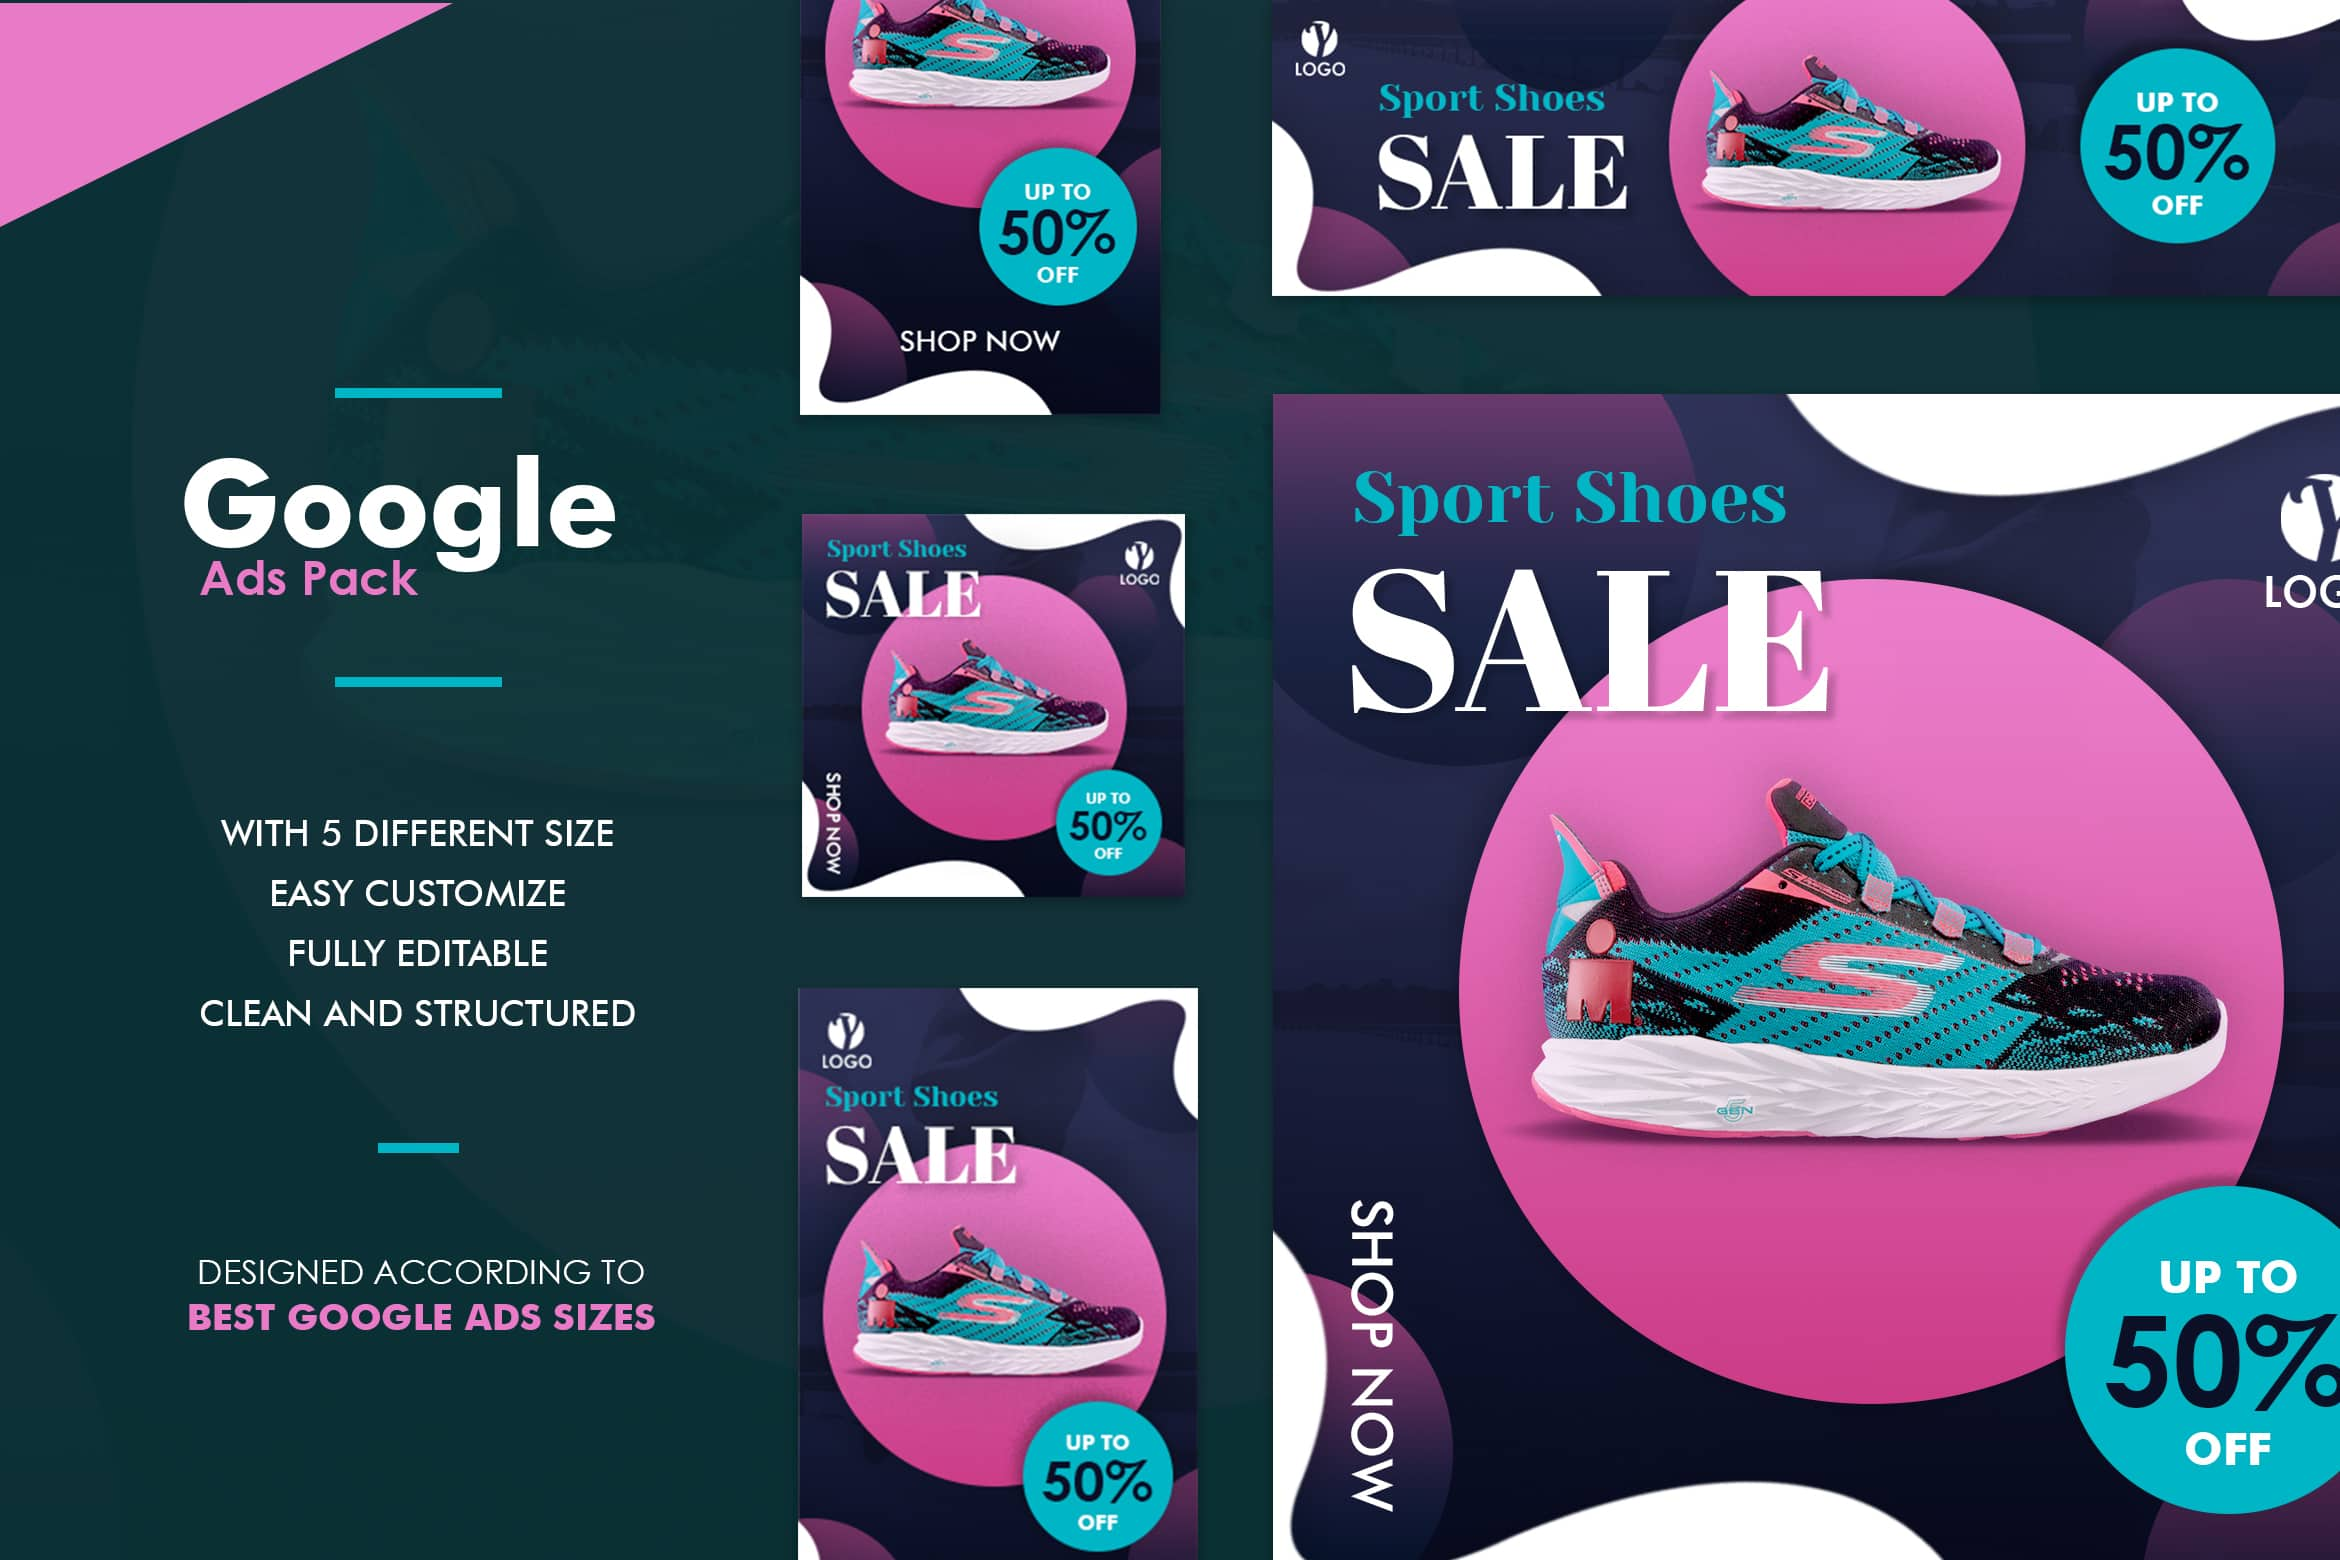 Google Ads Web Banner - Sport Shoes Sale